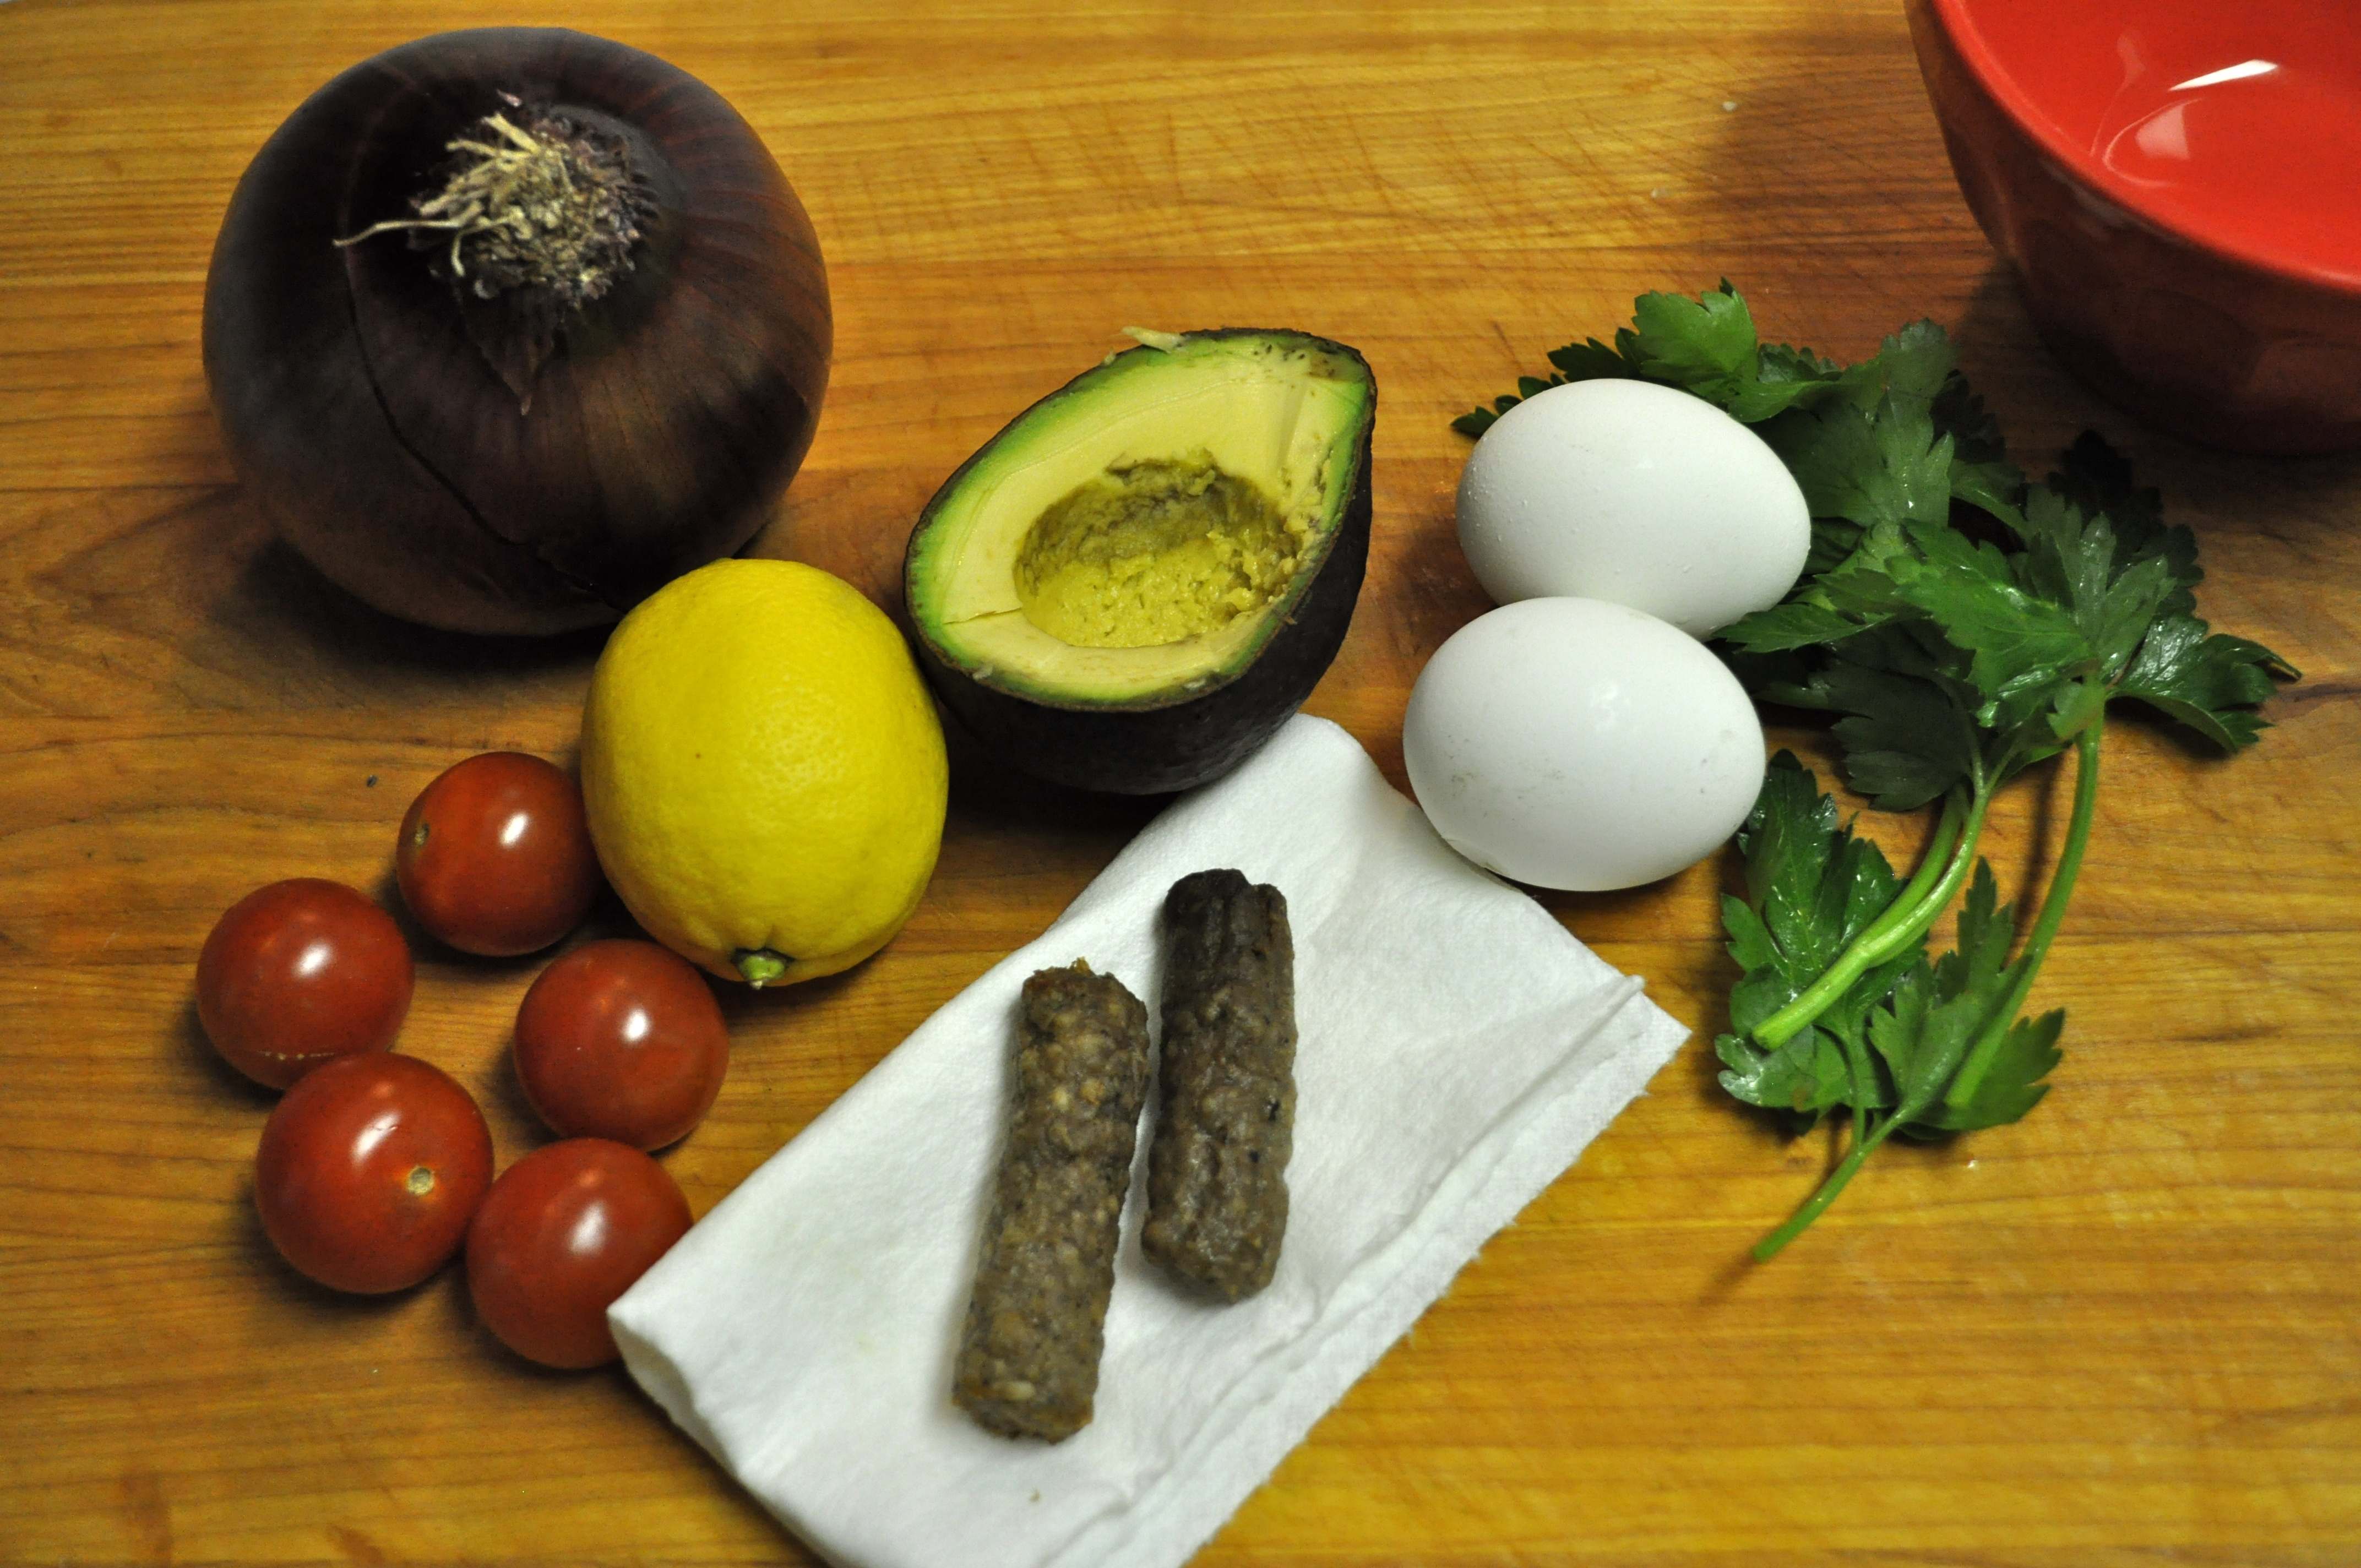 ingredients for The Breakfast Salad